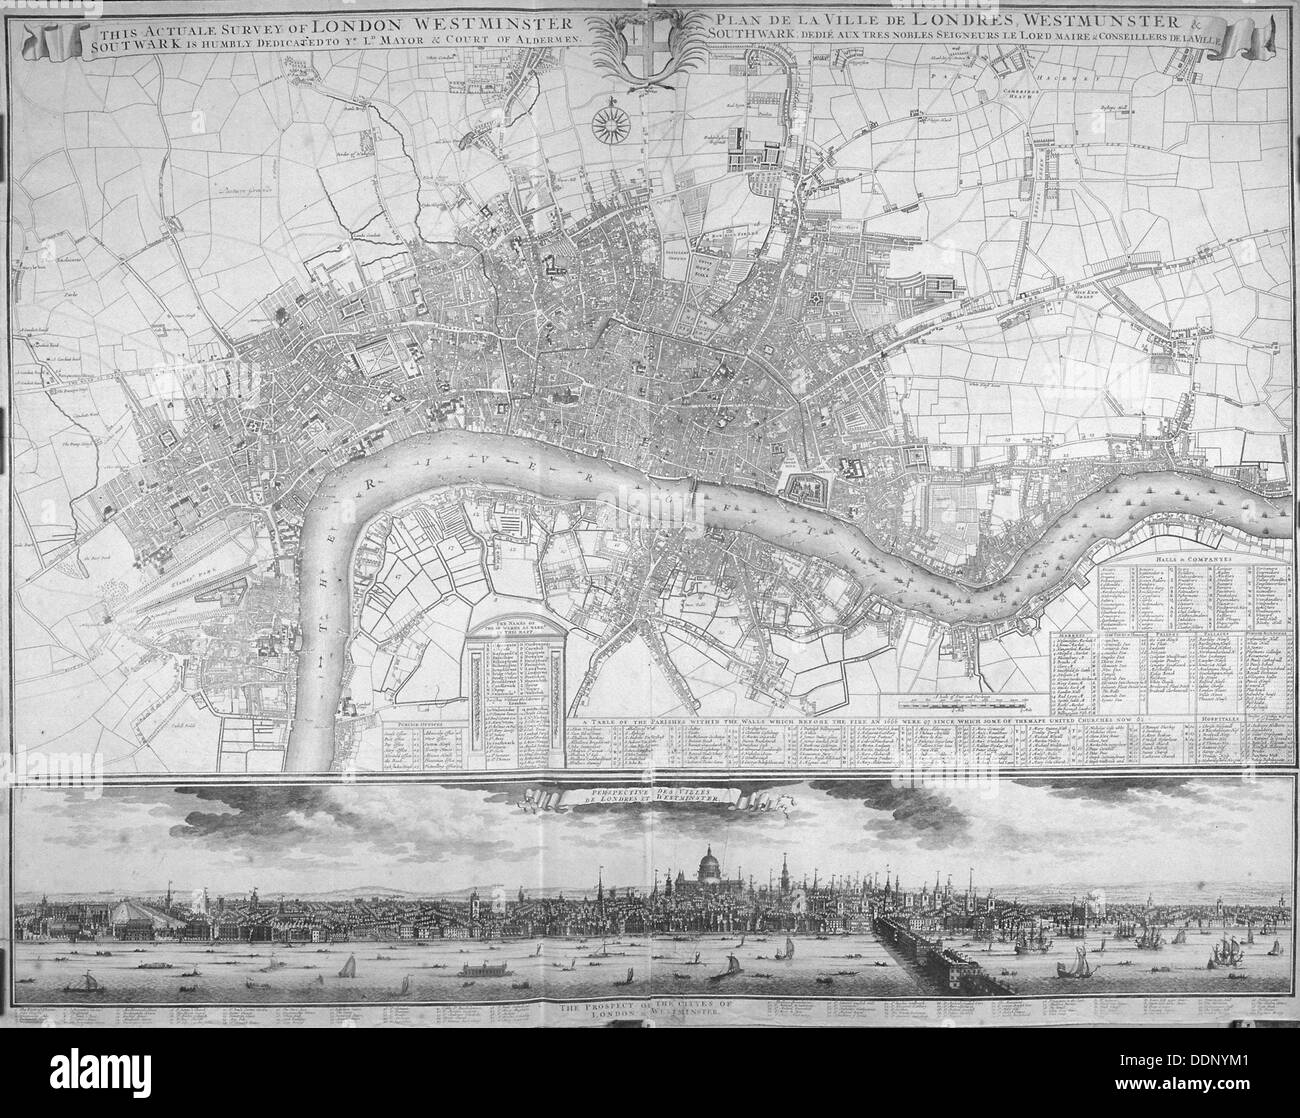 Map of Westminster, the City of London, Southwark, the Thames and surrounding areas, 1710. Artist: Anon - Stock Image